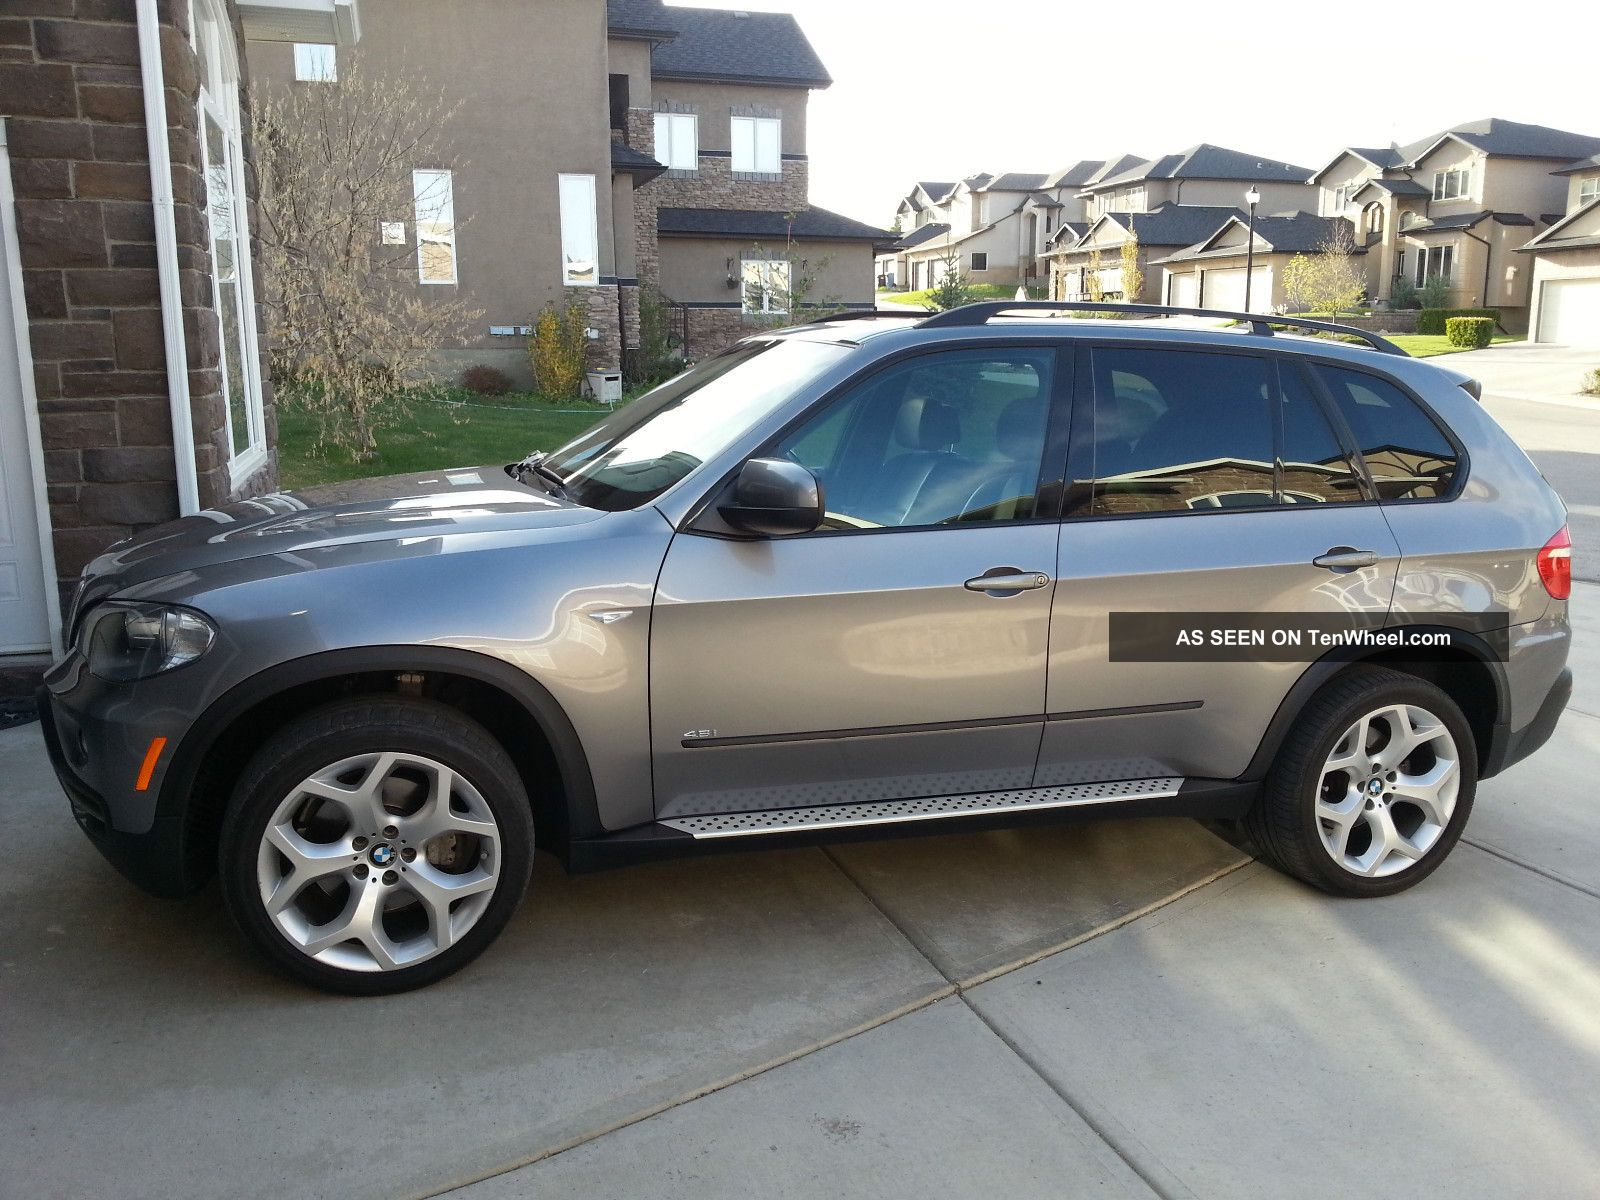 2008 Bmw X5 4.  8i Sport Suv Private 2 Sets Of Wheels Autocheck Report X5 photo